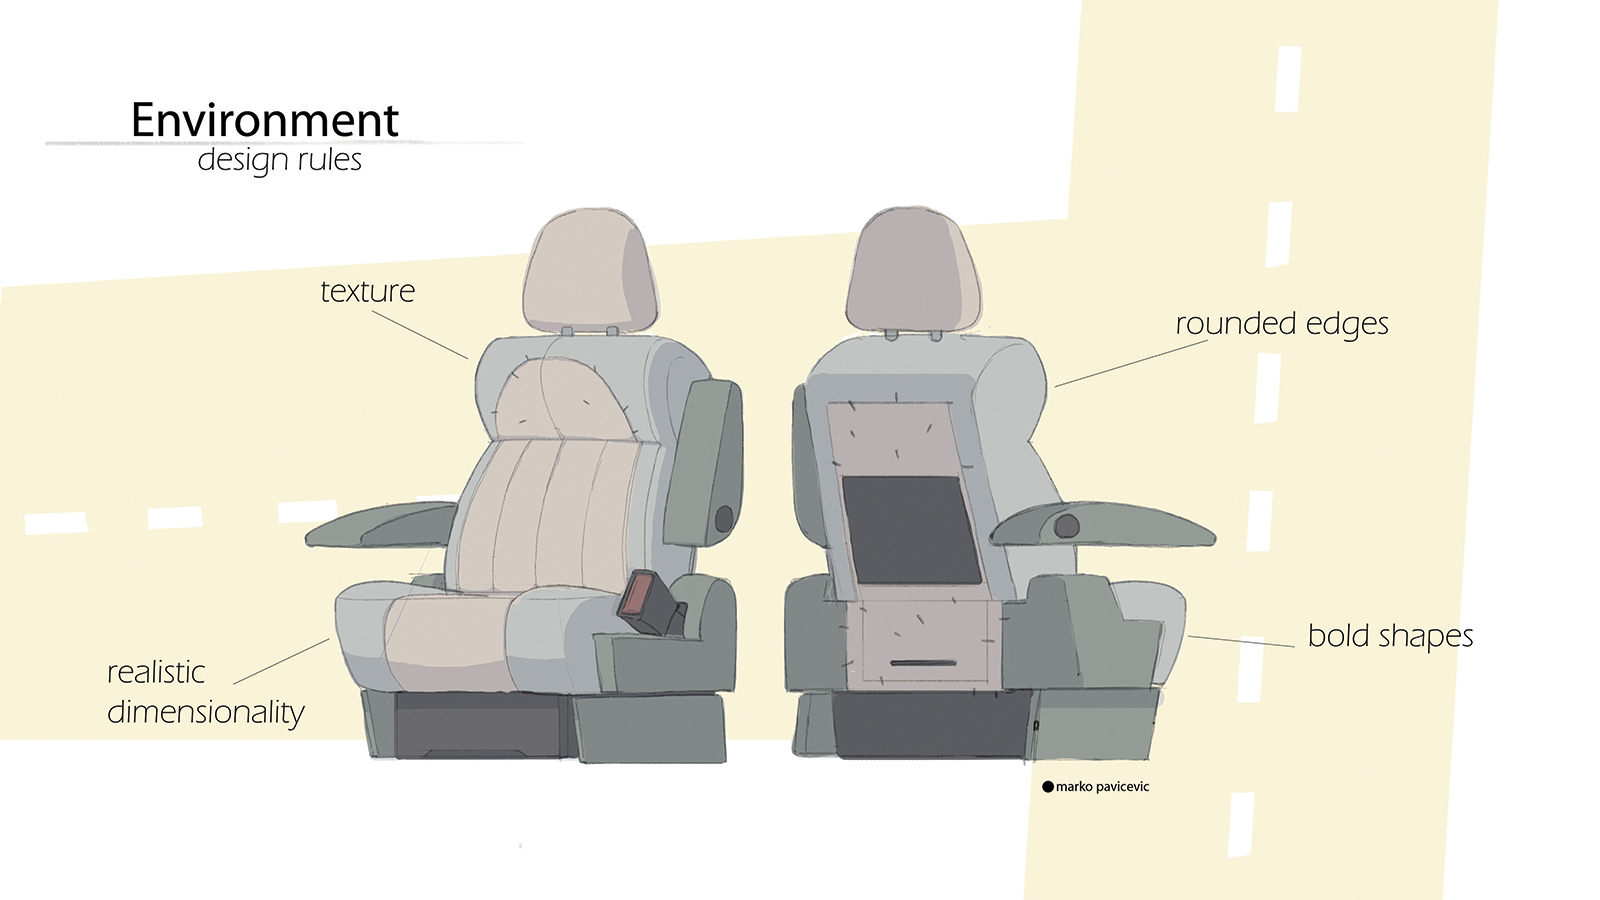 Turnaround and design rules for a car seat depicted in Flap.